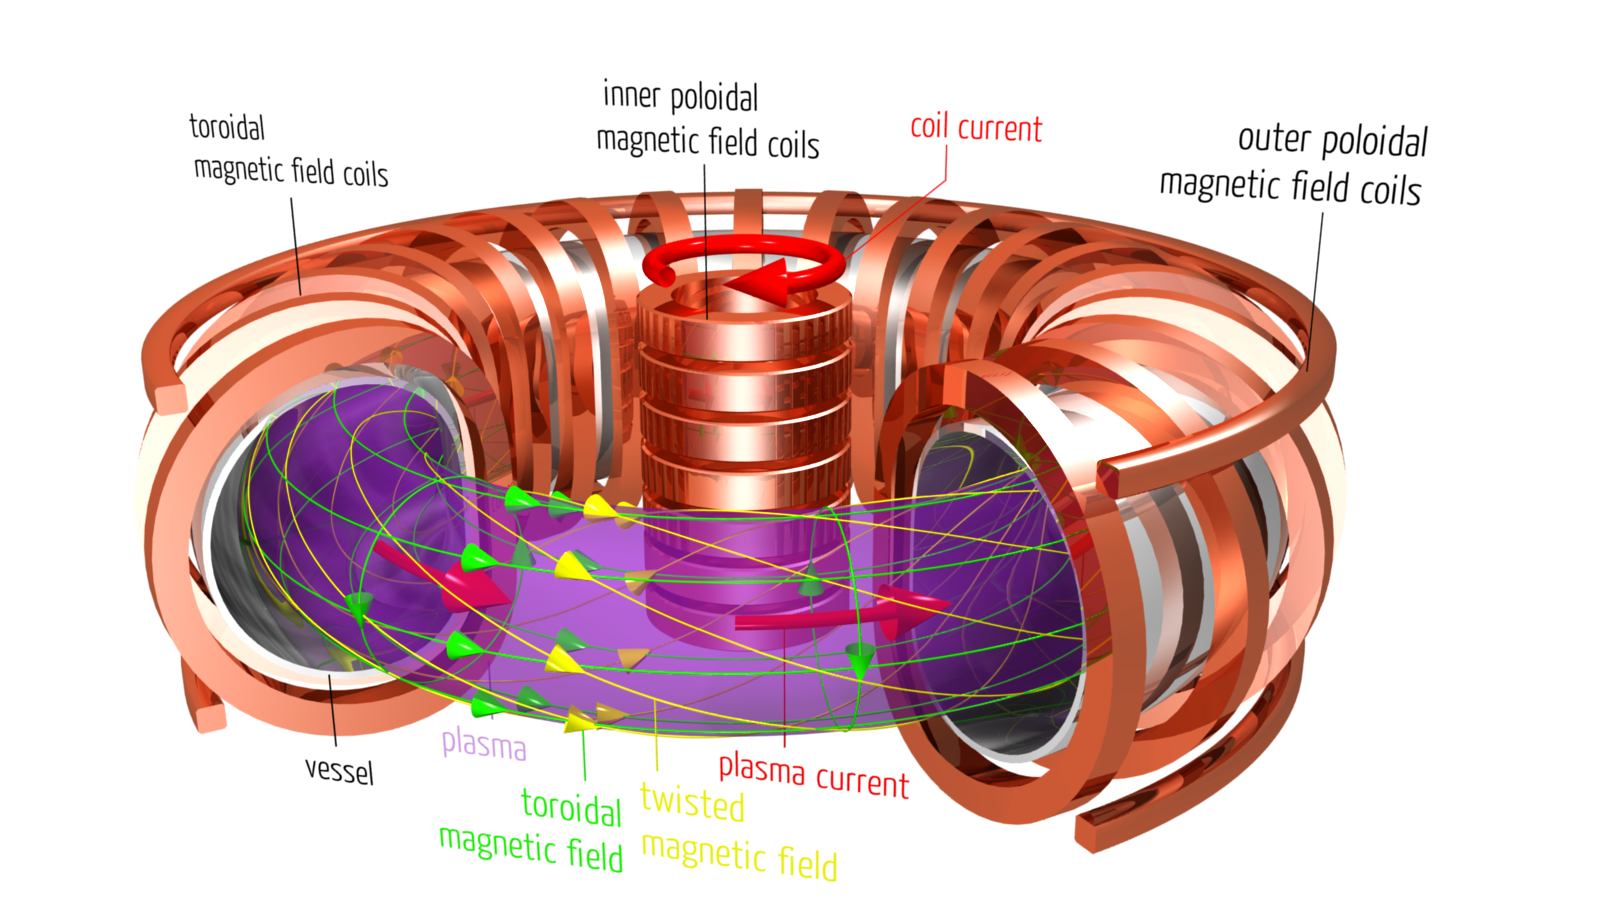 10 Facts About Fusion Energy Via Magnetic Confinement